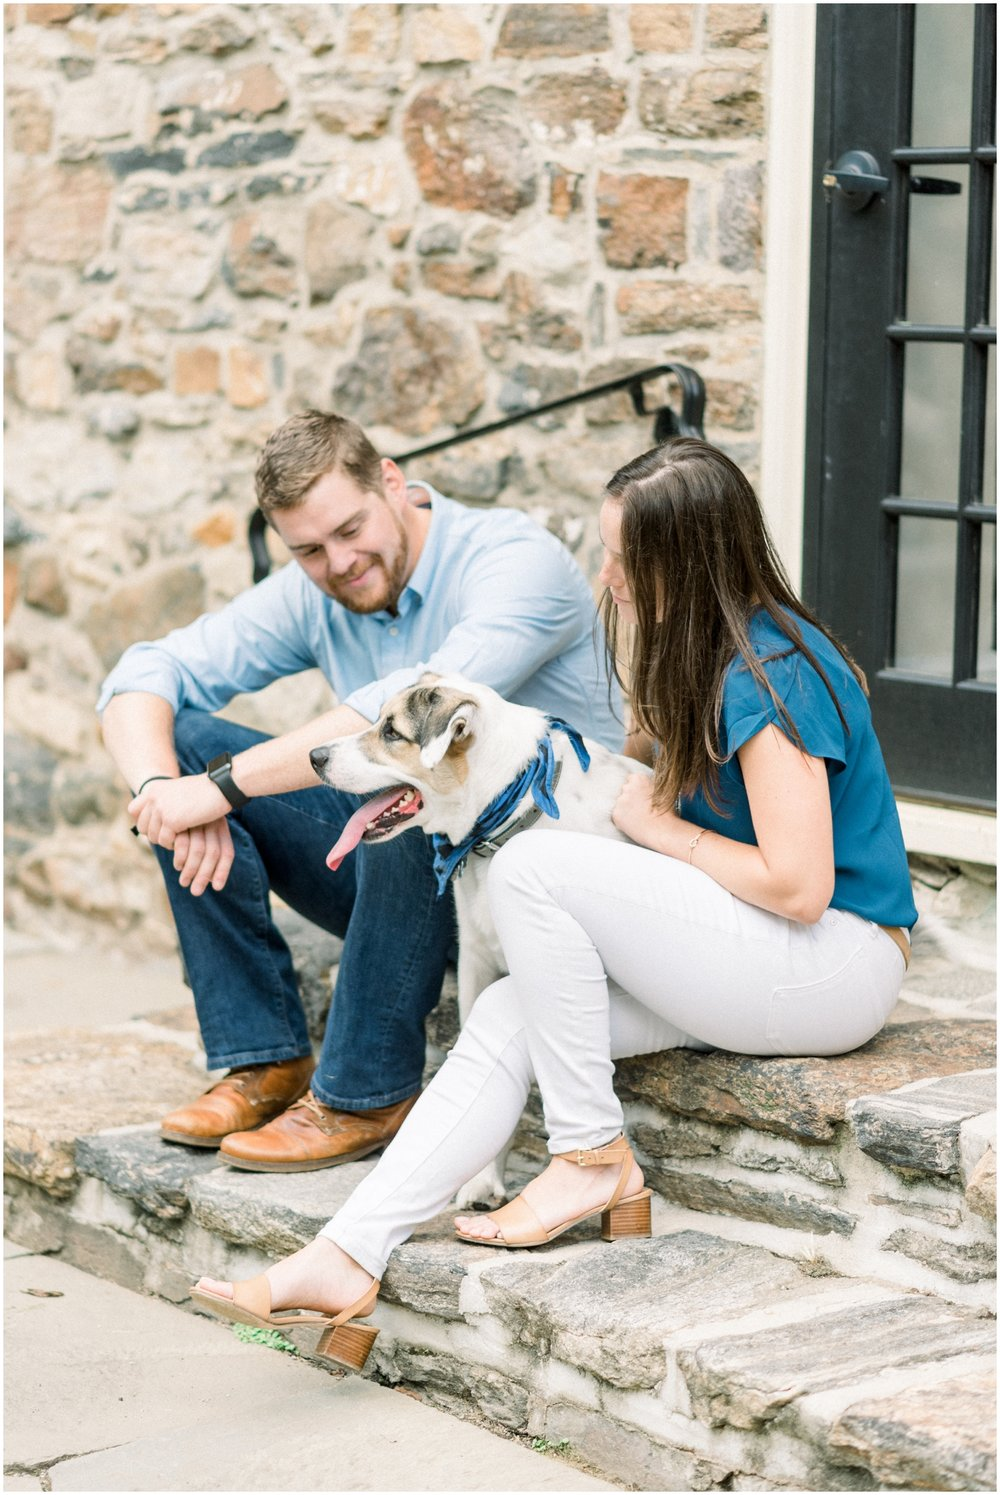 Summer Engagement Session at Hunting Hill Mansion - Krista Brackin Photography_0042.jpg